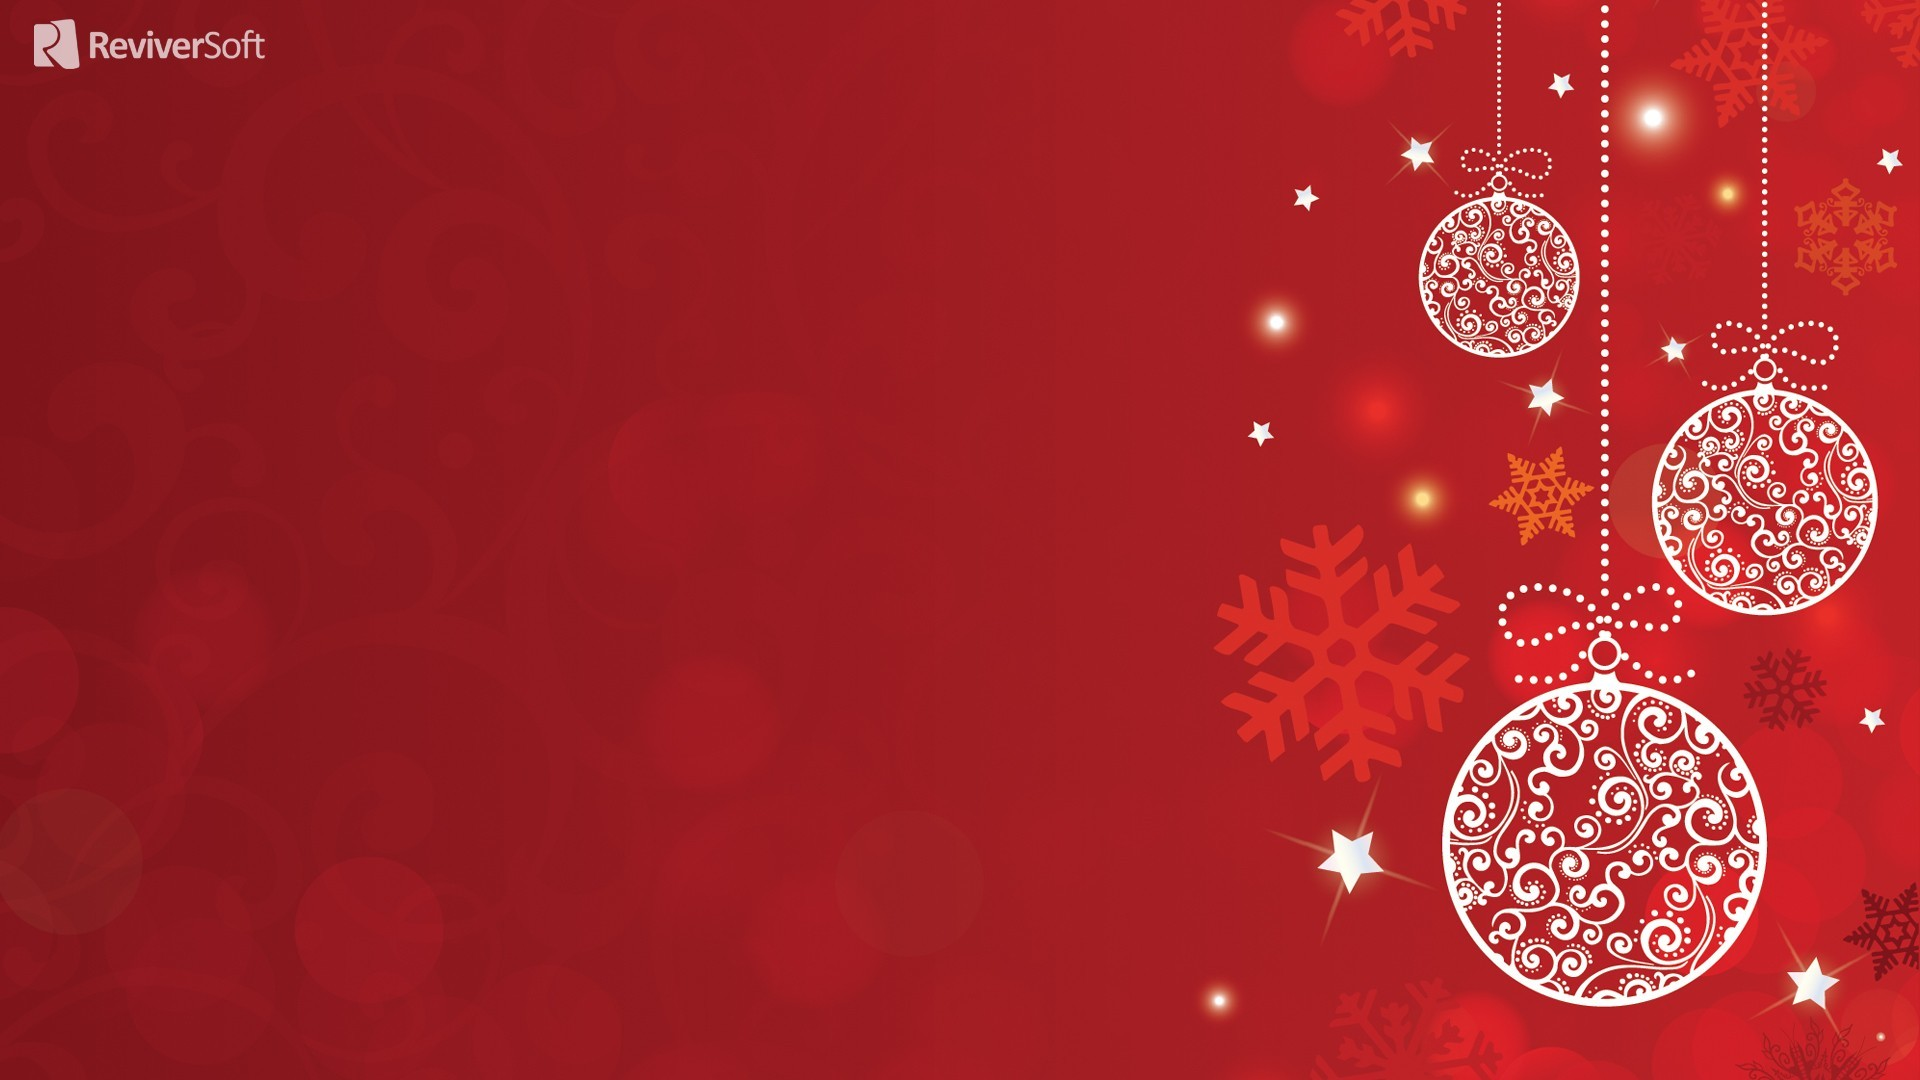 1920x1080  White Christmas Backgrounds Download: white christmas